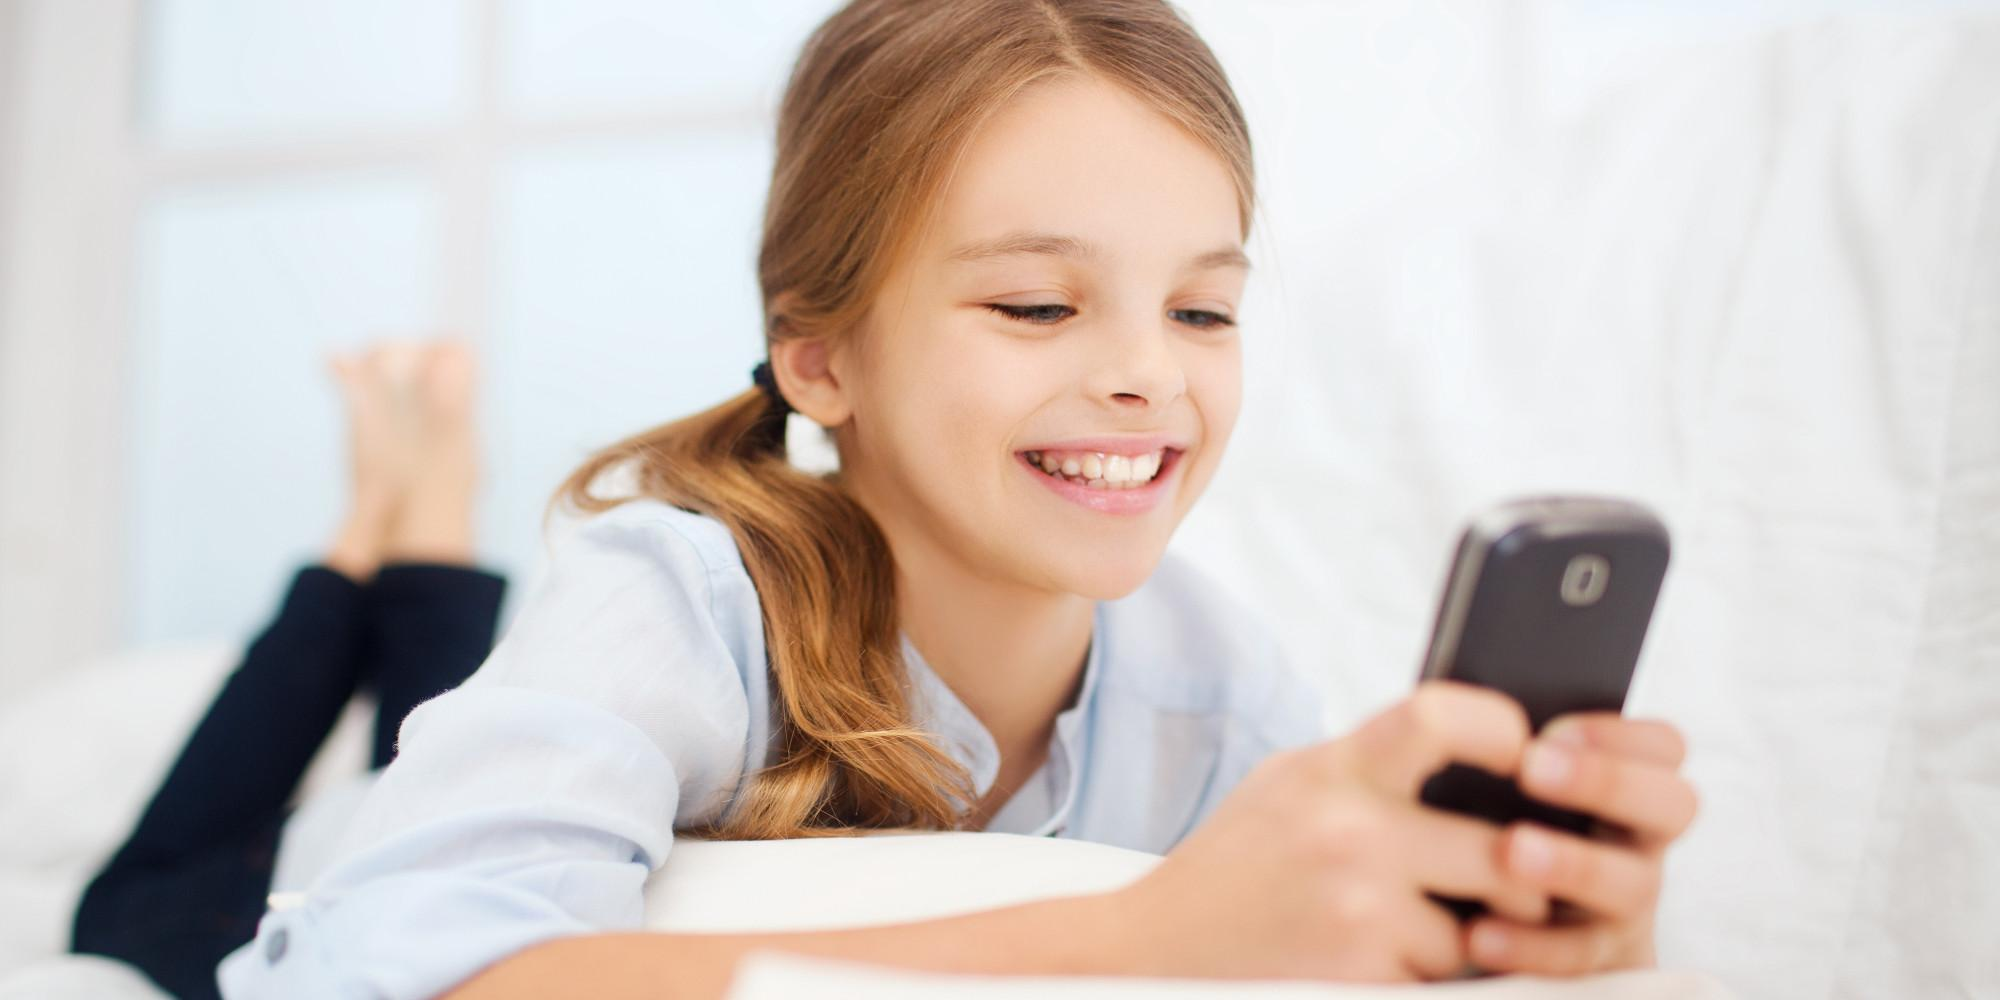 The best apps for children need to be fun with endless possibilities